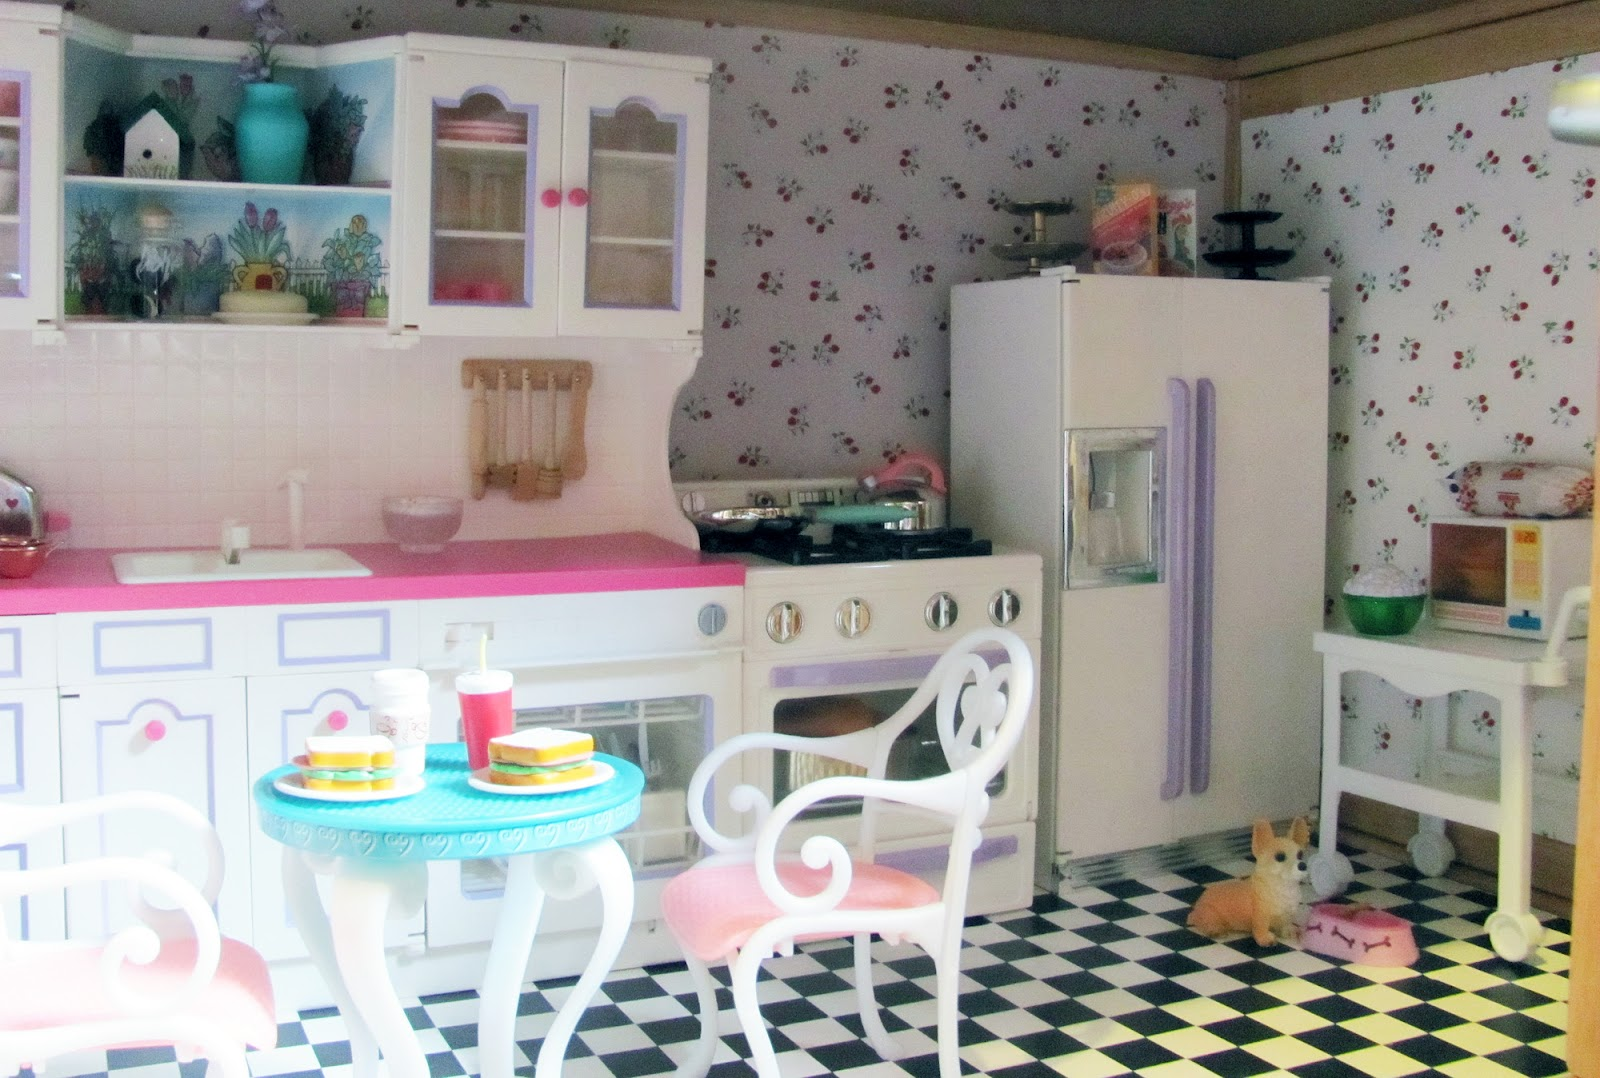 some of the items in the kitchen are barbie some are kitchen little some are miniatures i found in various places over the years